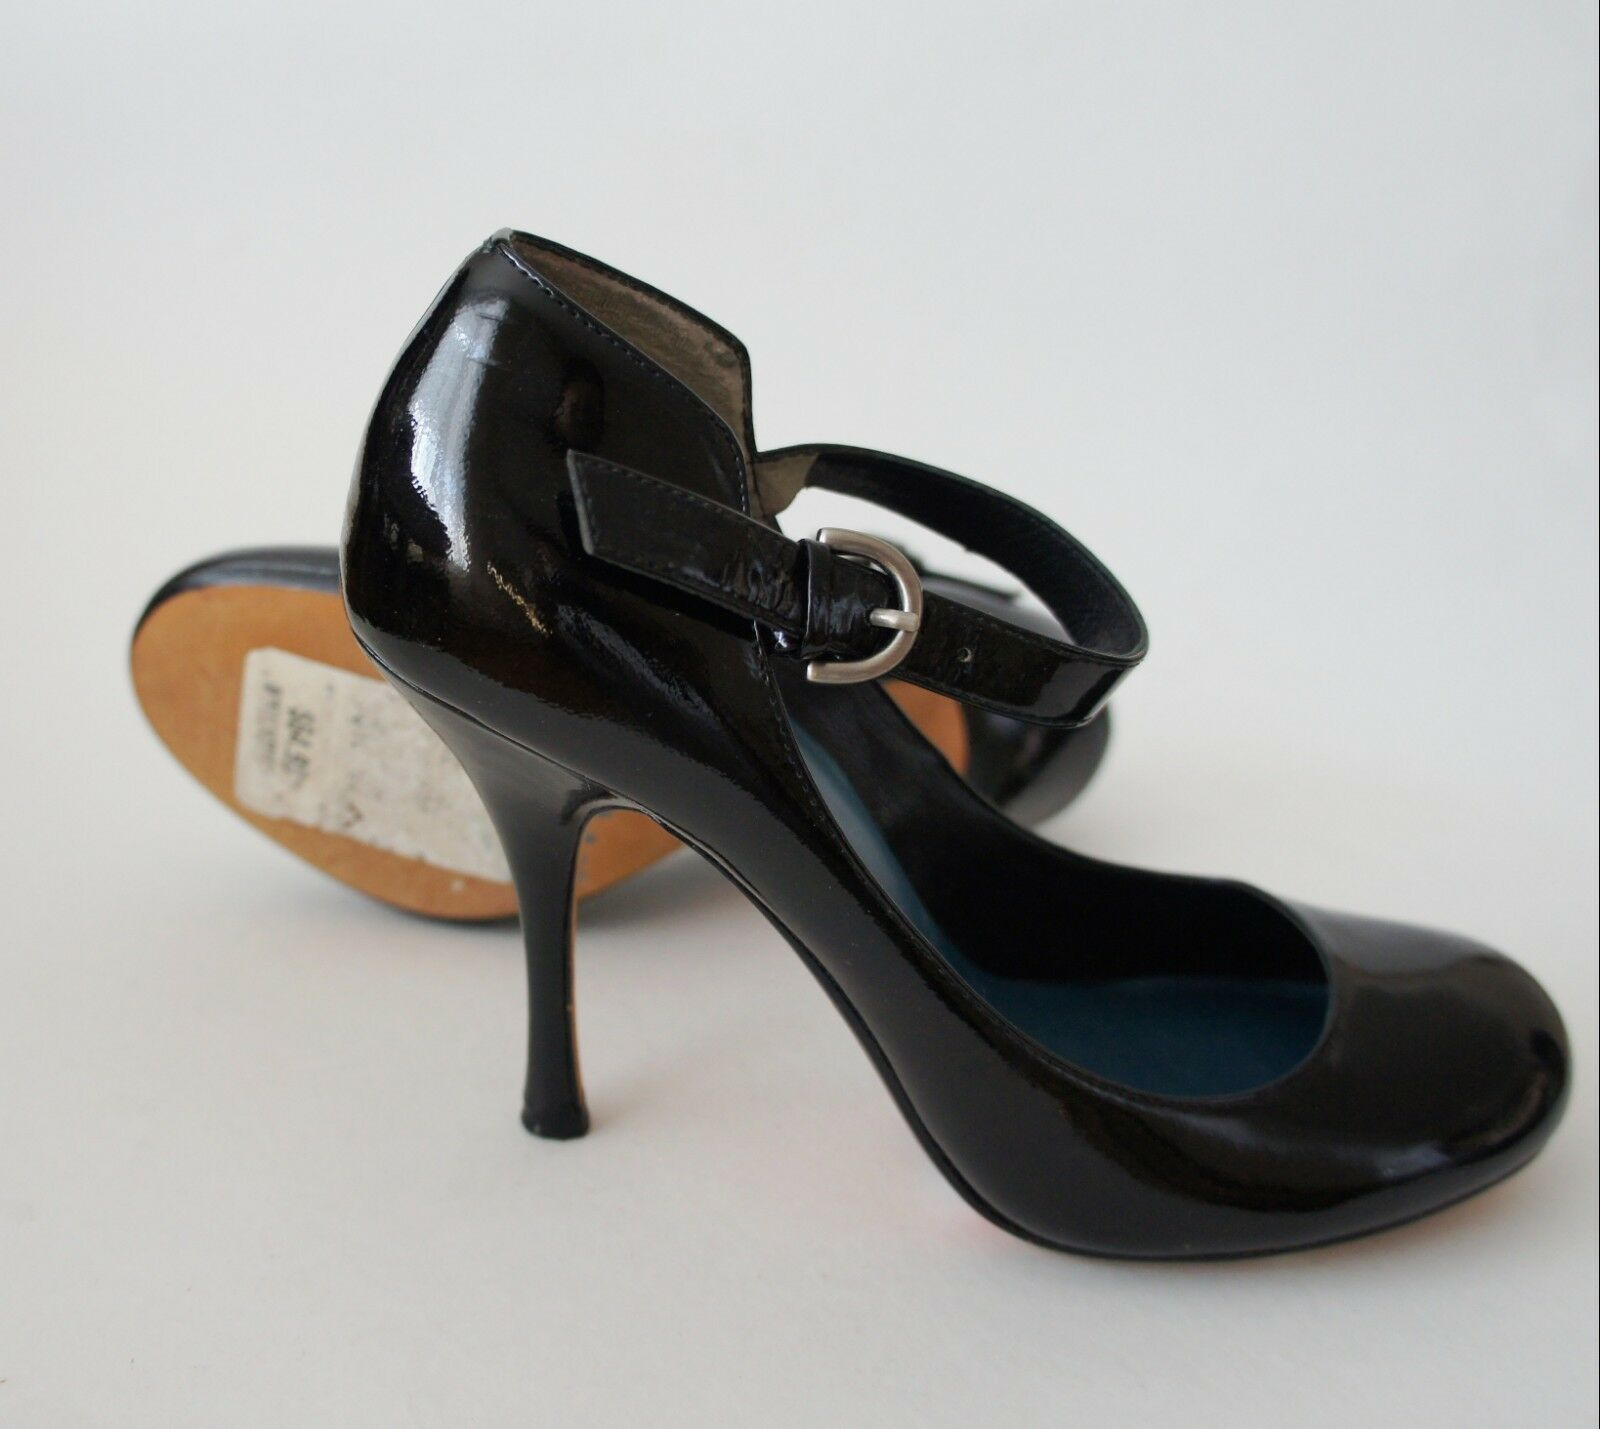 Auth Max Max Max Studio Patent Leather Pumps Größe 6  110 5595a8